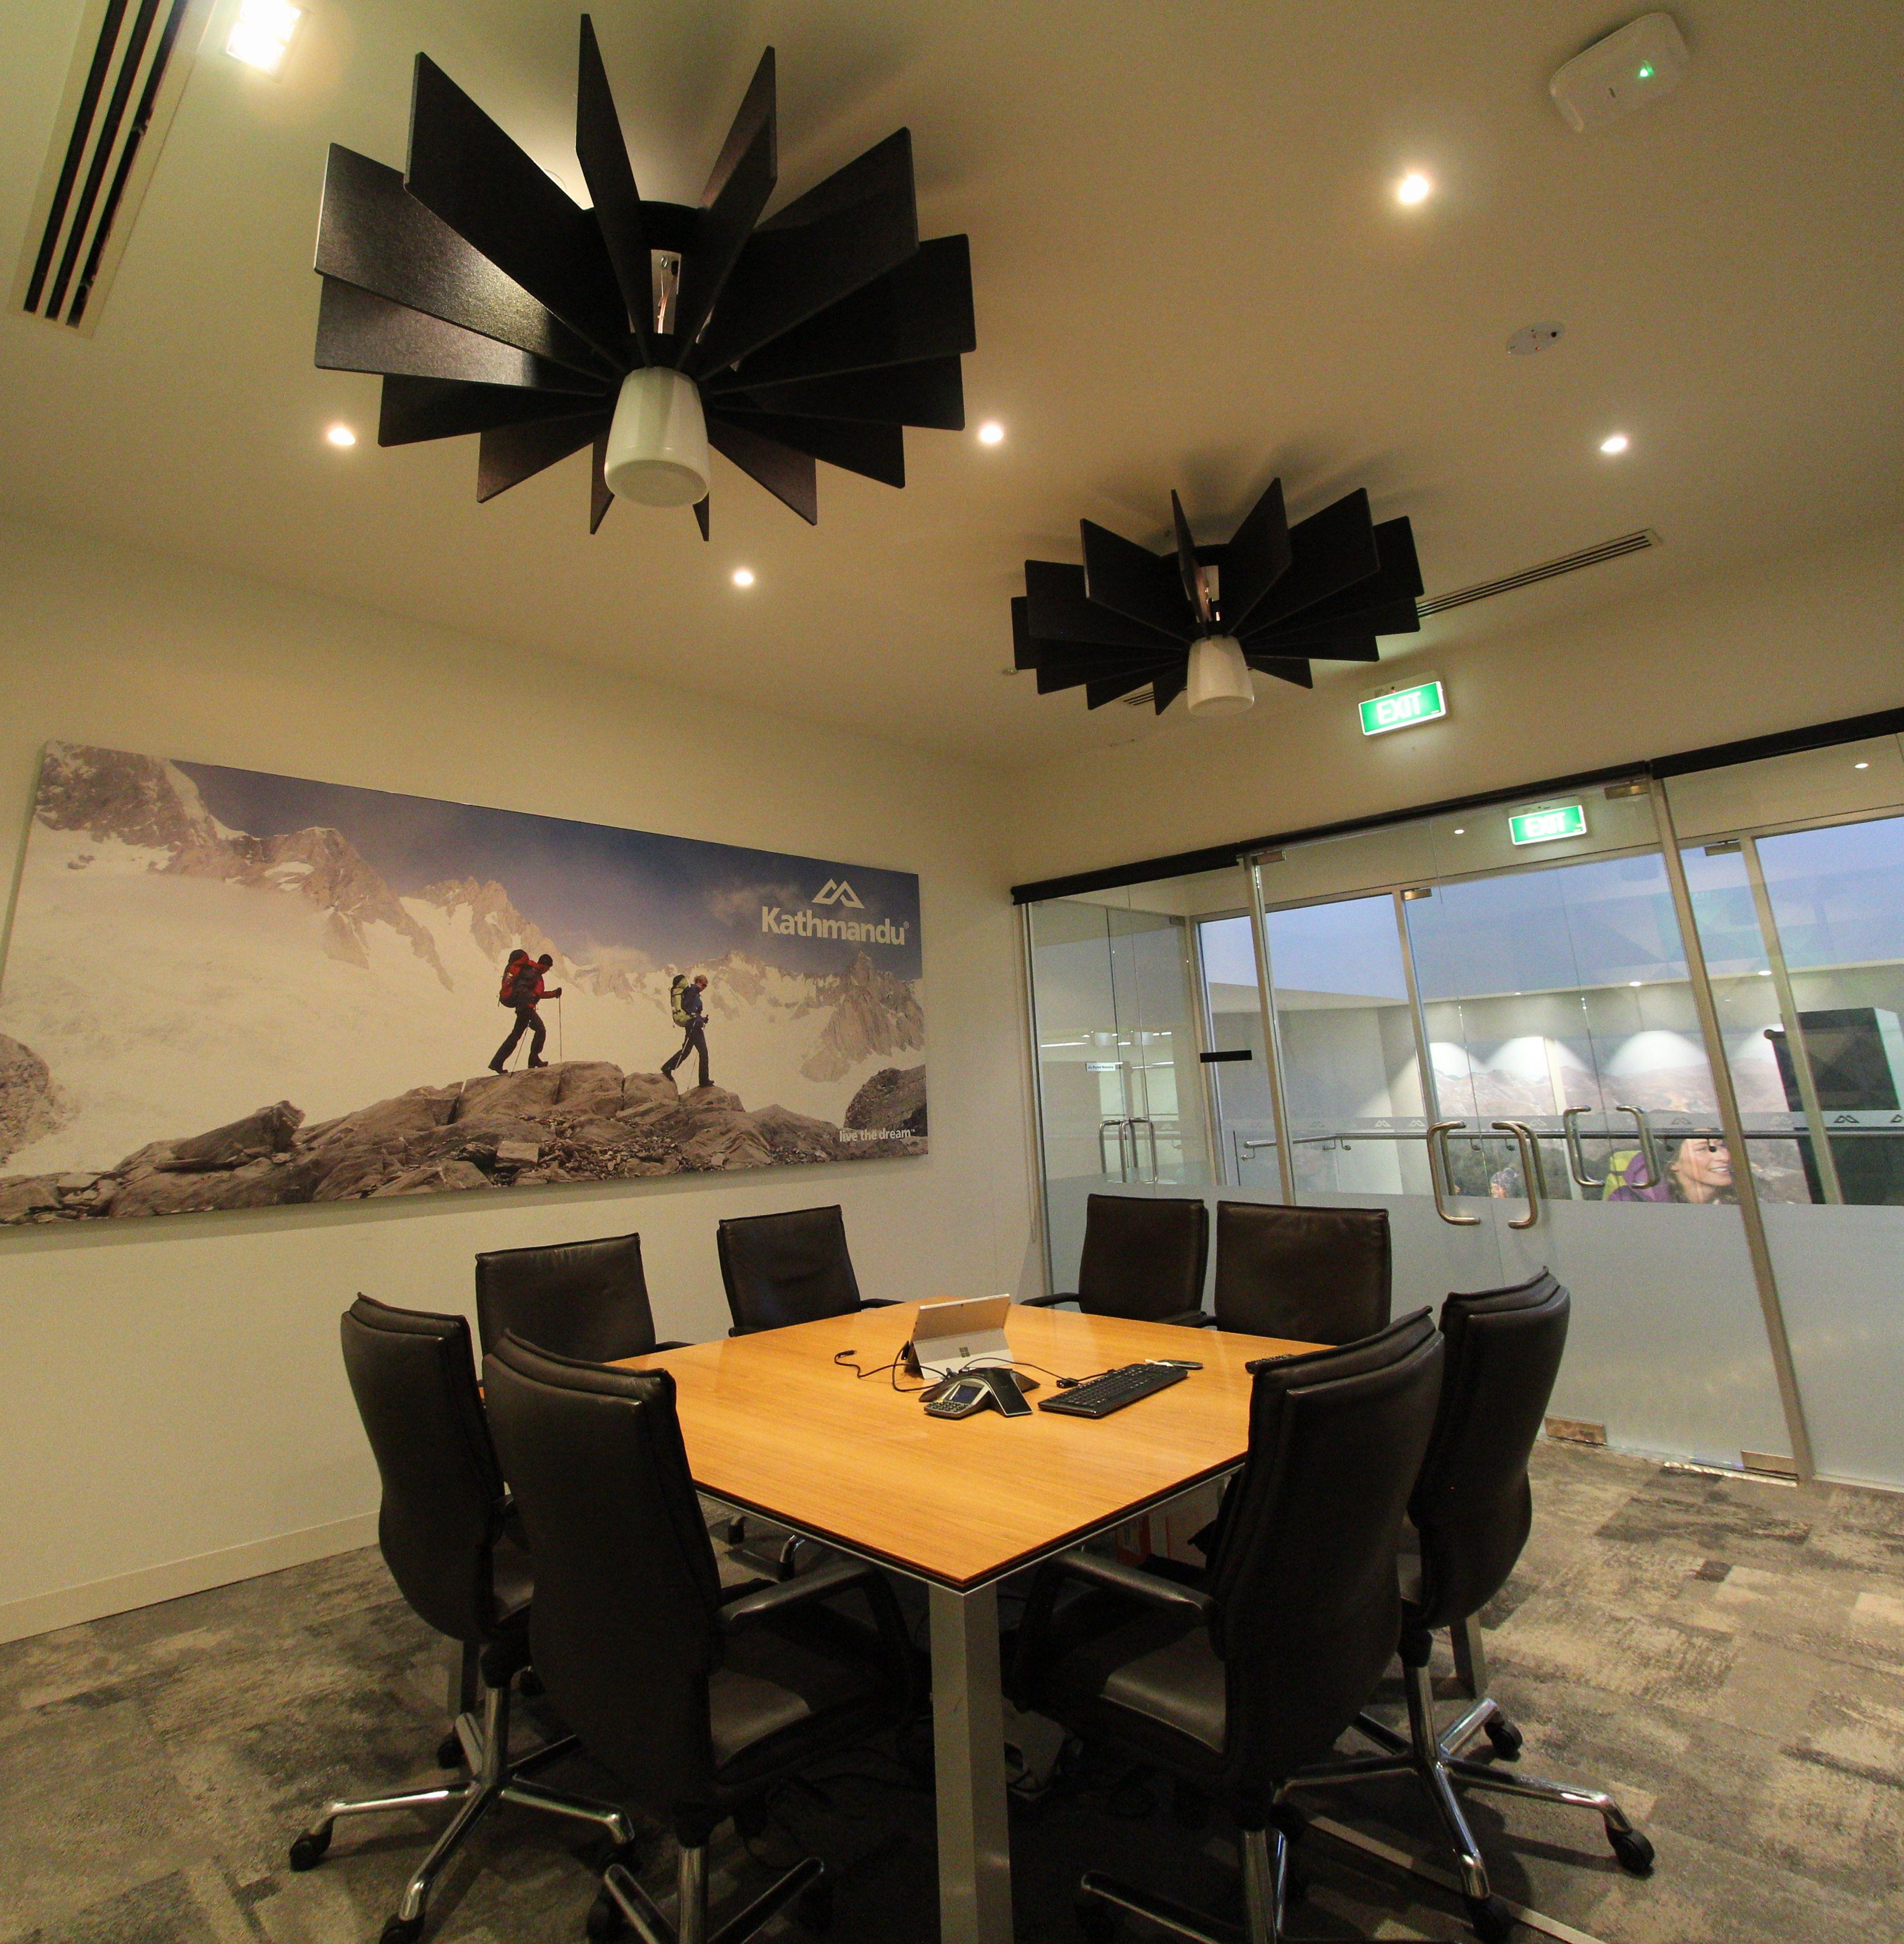 Kathmandu Office - Acoustic Torus Ceiling Lattice